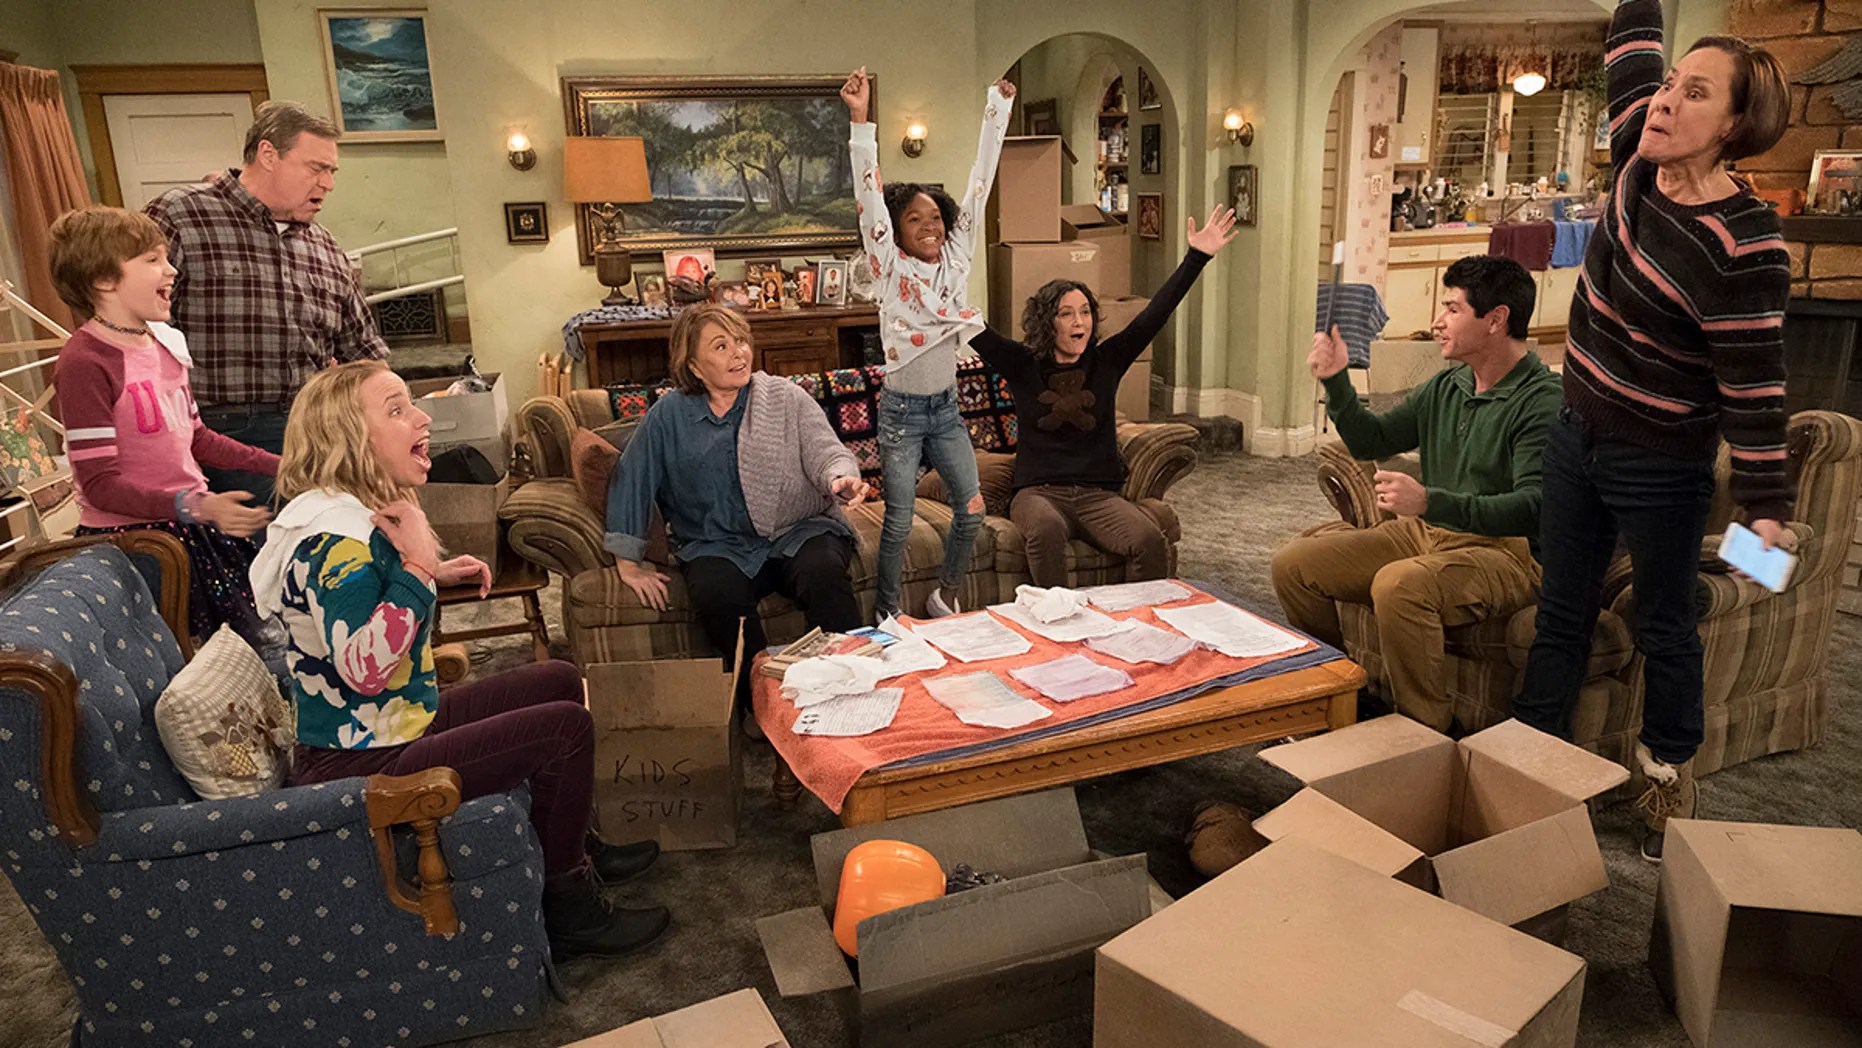 'Roseanne' spin-off 'The Conners' sets premiere date at ABC   Fox News